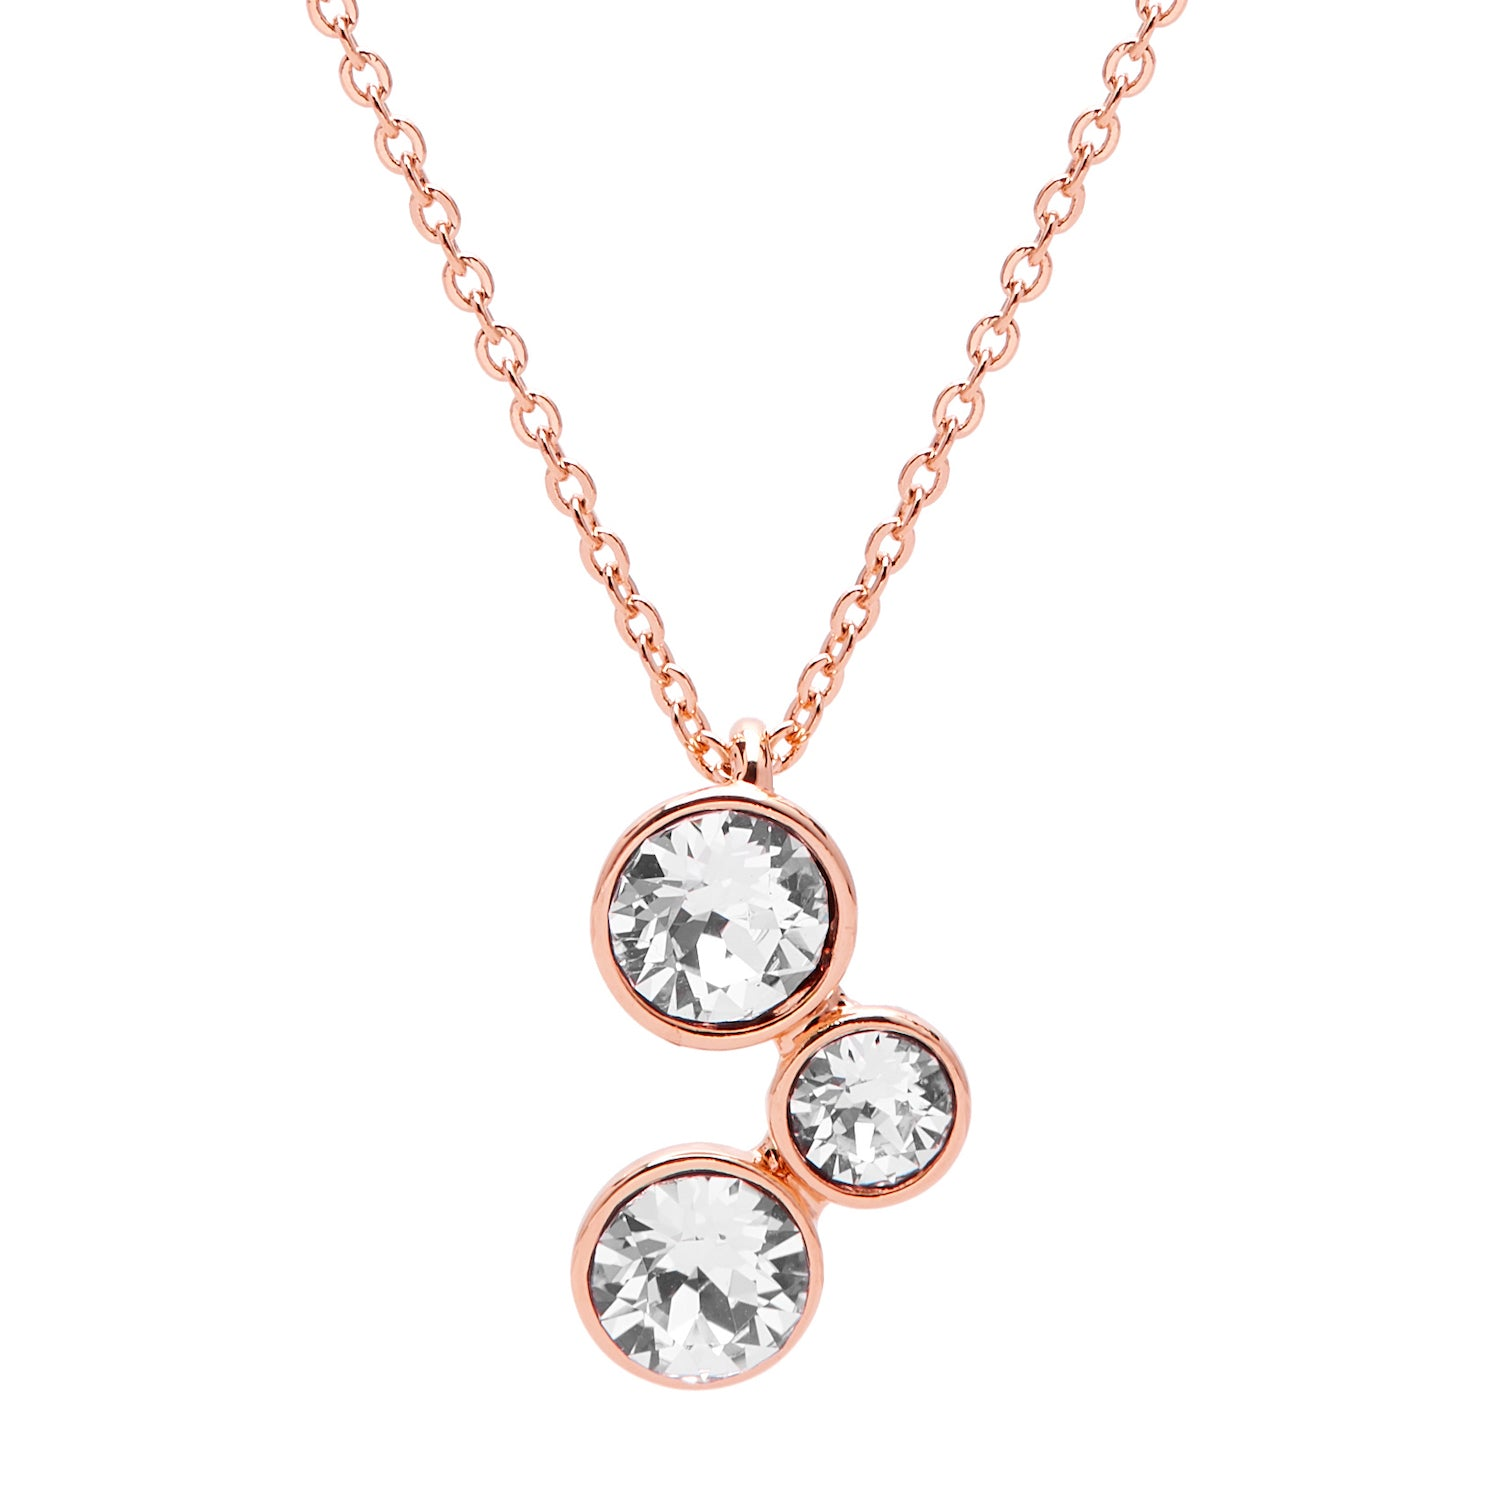 "Aura ""Athena"" 18k Rose Gold Plated Swarovski Crystal Pendant Necklace, 16"" with 2"" extender - Harpson Accessories"